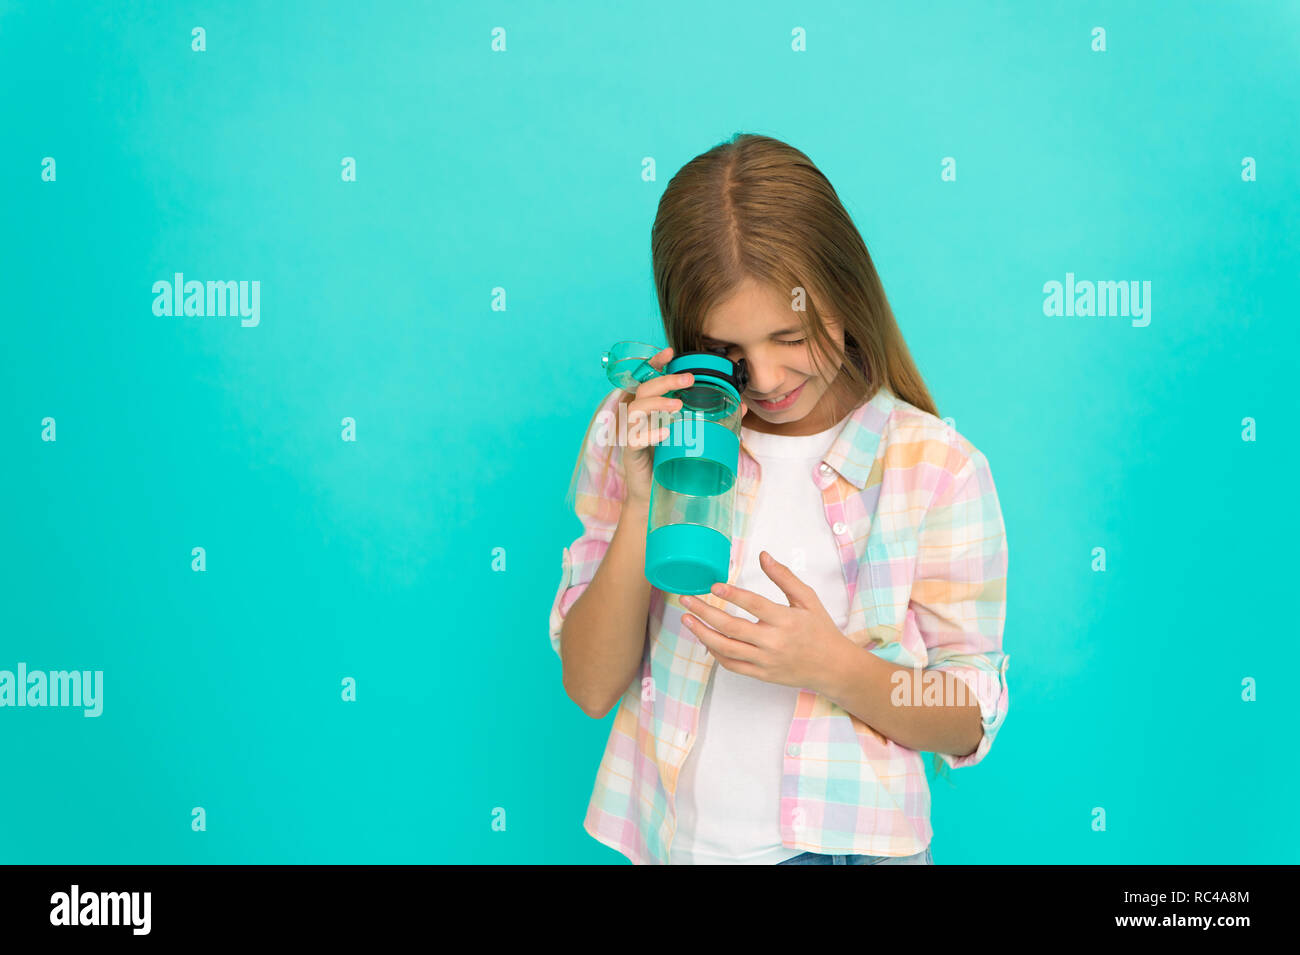 Girl cares about health and water balance. Kid hold bottle blue background. Child girl long hair has water bottle. Water balance concept. Healthy and hydrated. Pediatric disorders of water balance. - Stock Image